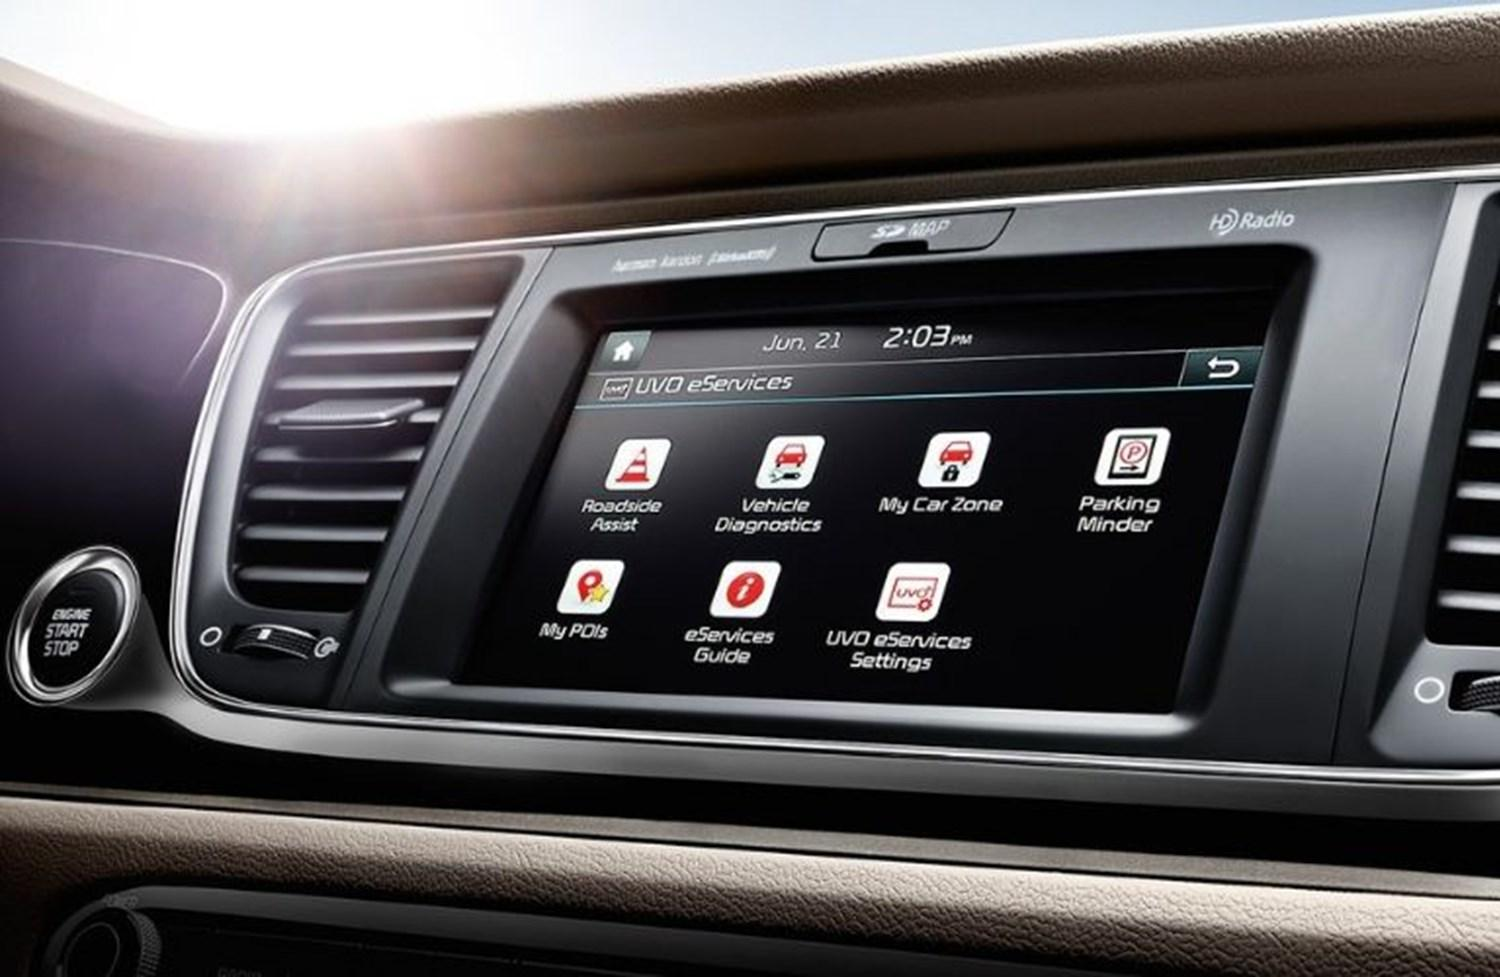 Interior view of an infotainment system featuring Kia UVO